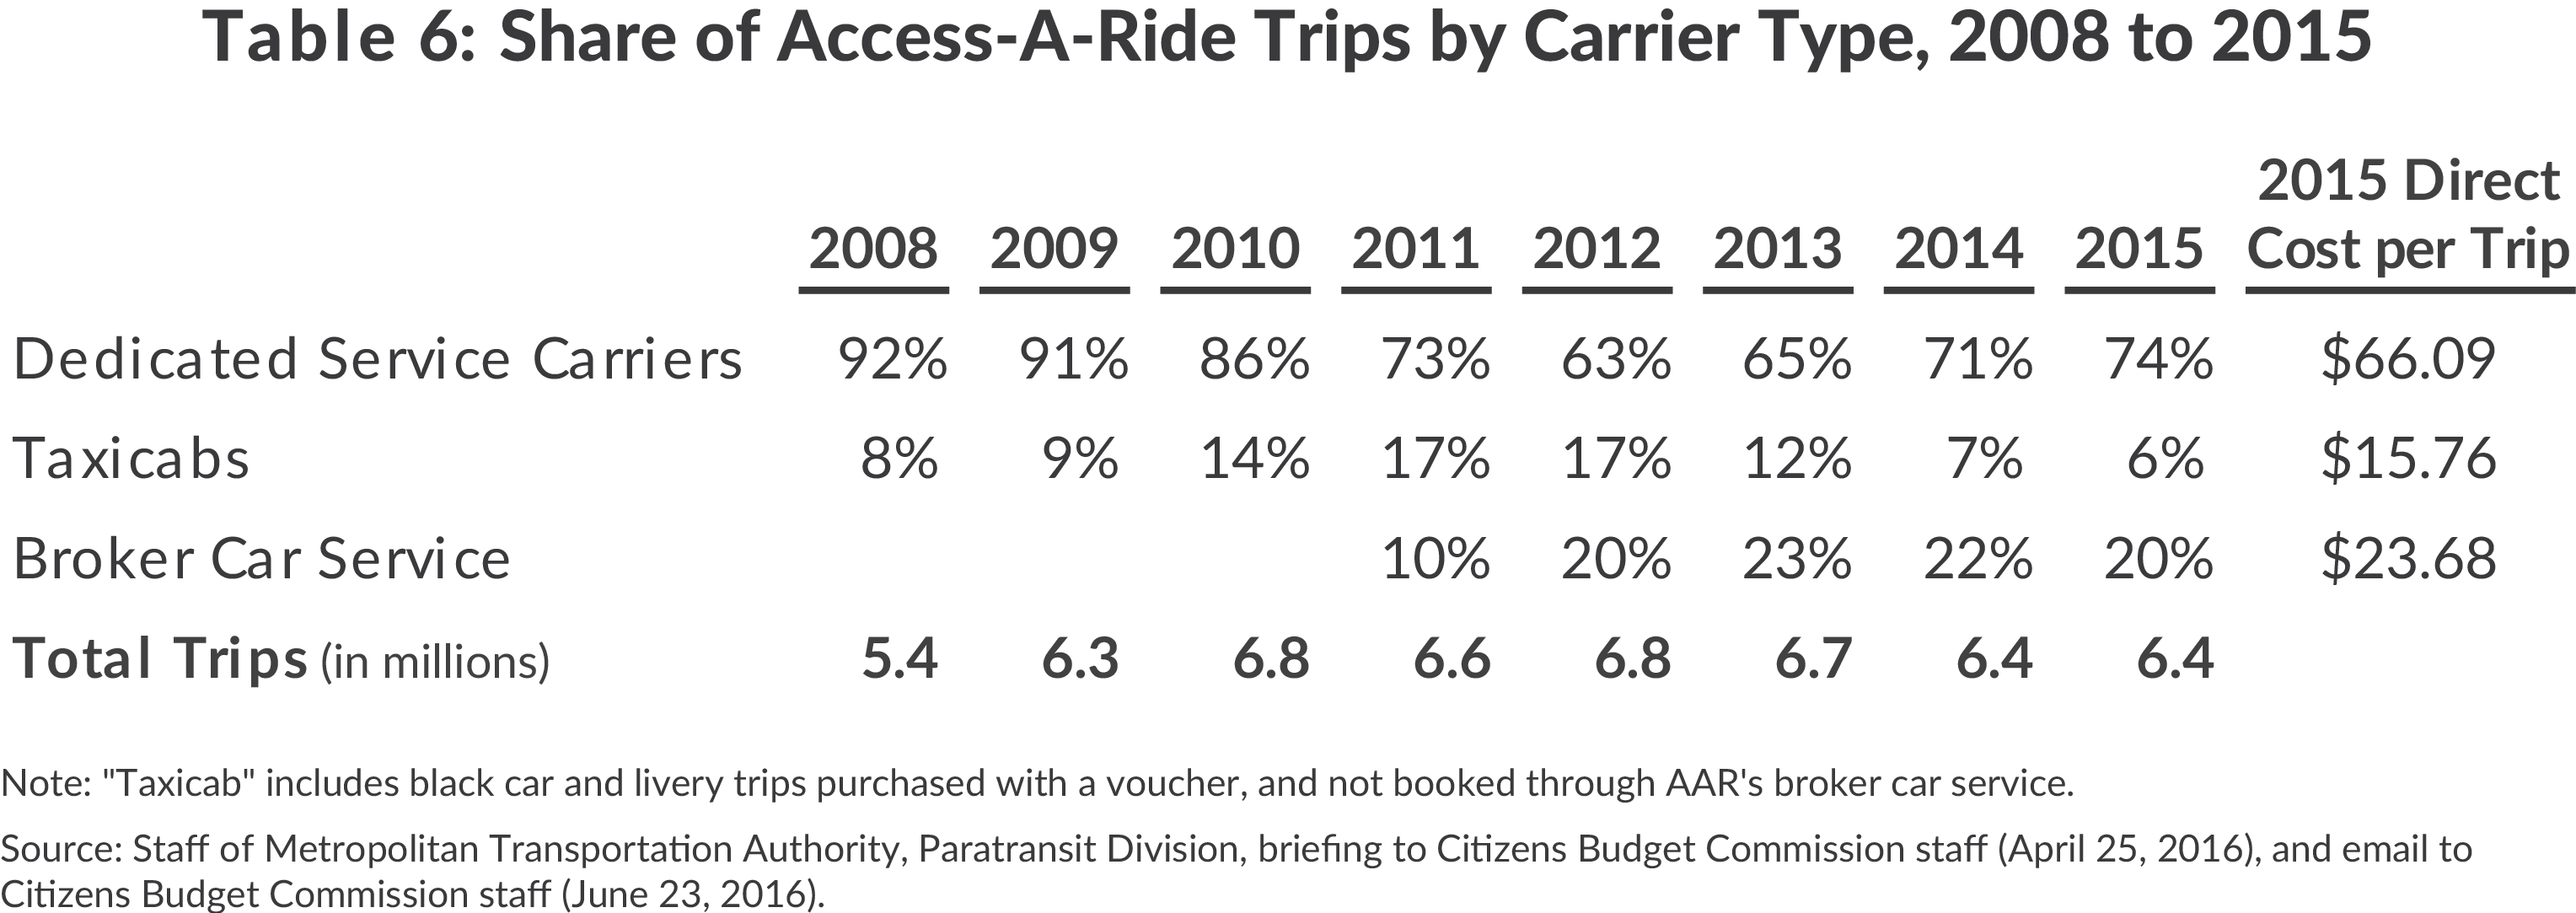 Share of access-a-ride trips by carrier, 2008 to 2015